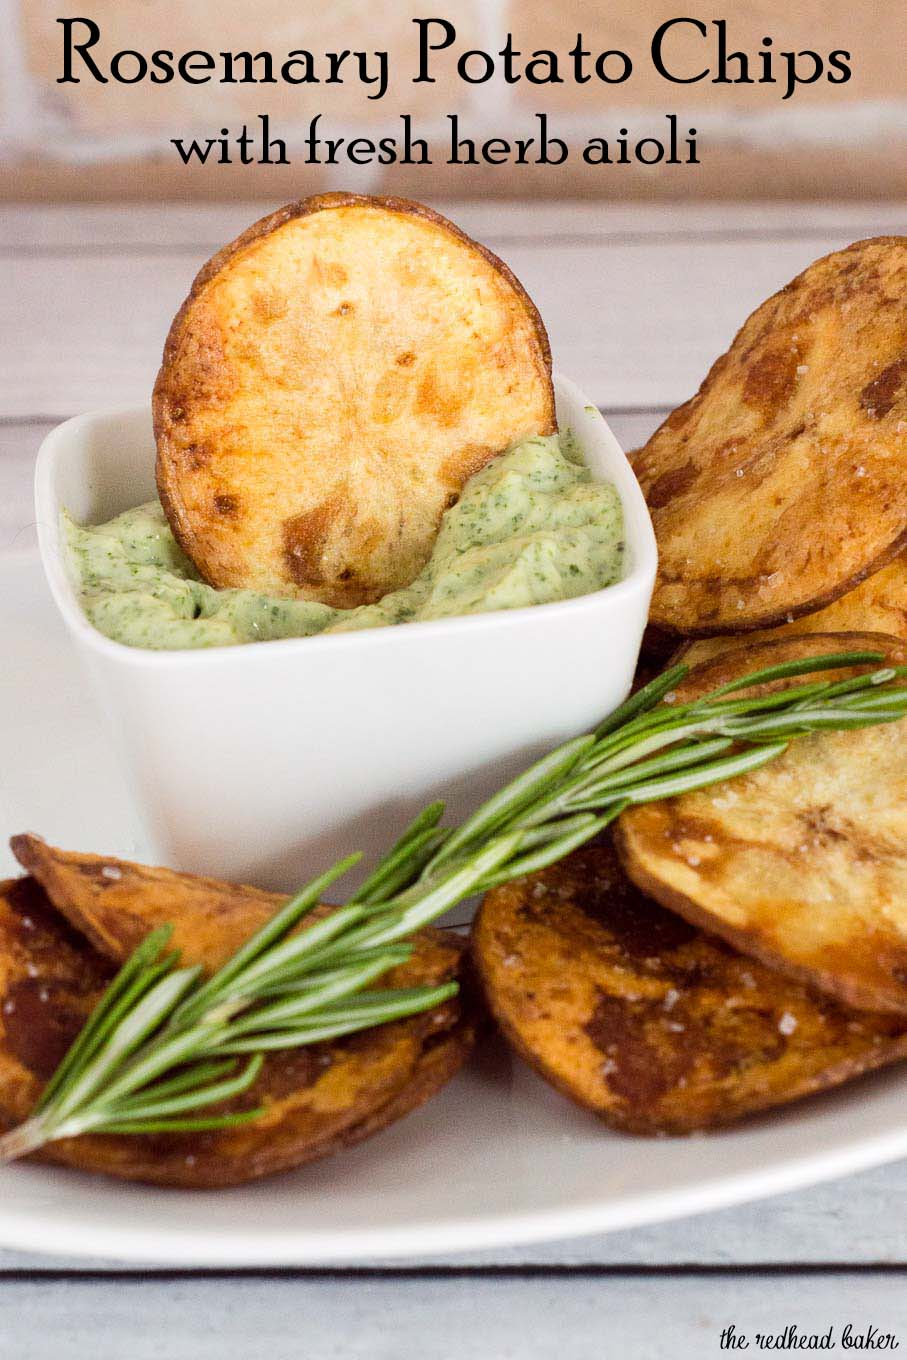 Rosemary potato chips: you can't get this flavor in a bag of store-bought chips! Dunk these crispy chips in a dip of fresh herb aioli for even more flavor. #ProgressiveEats